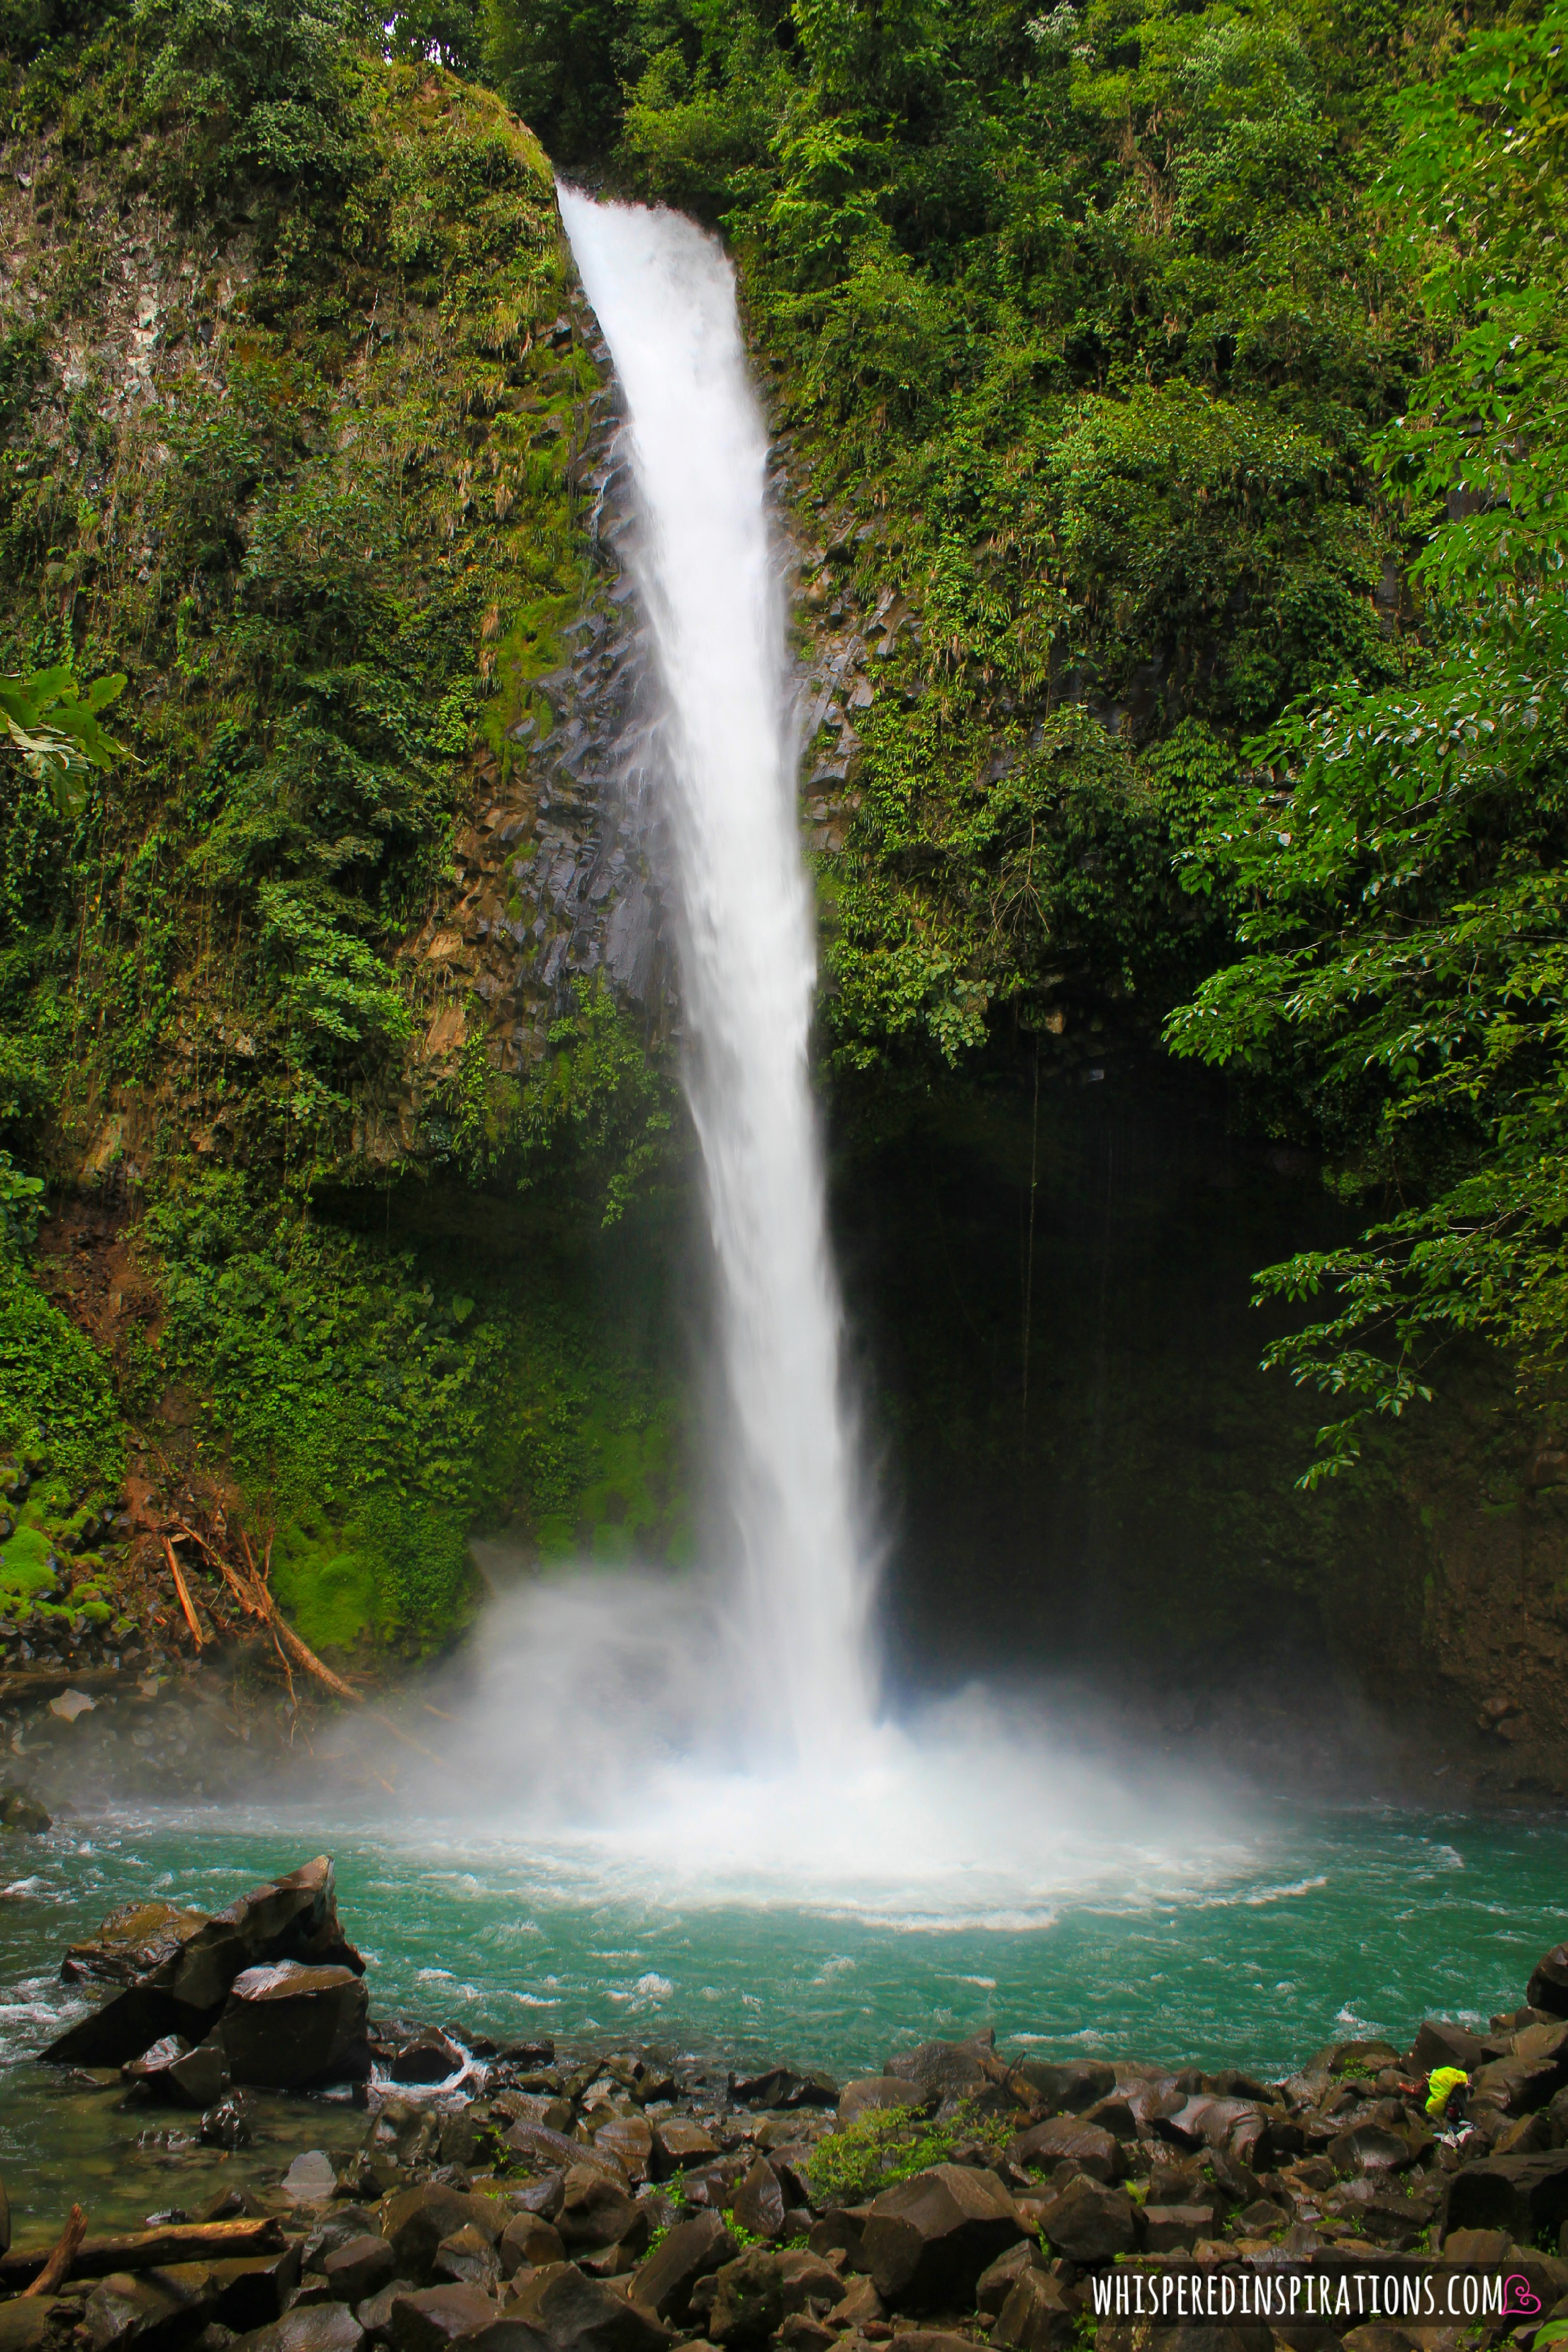 Visiting Costa Rica: Swimming in The La Catarata Fortuna, Crocodile Watching & Heading to Quepos. #GiftOfHappiness